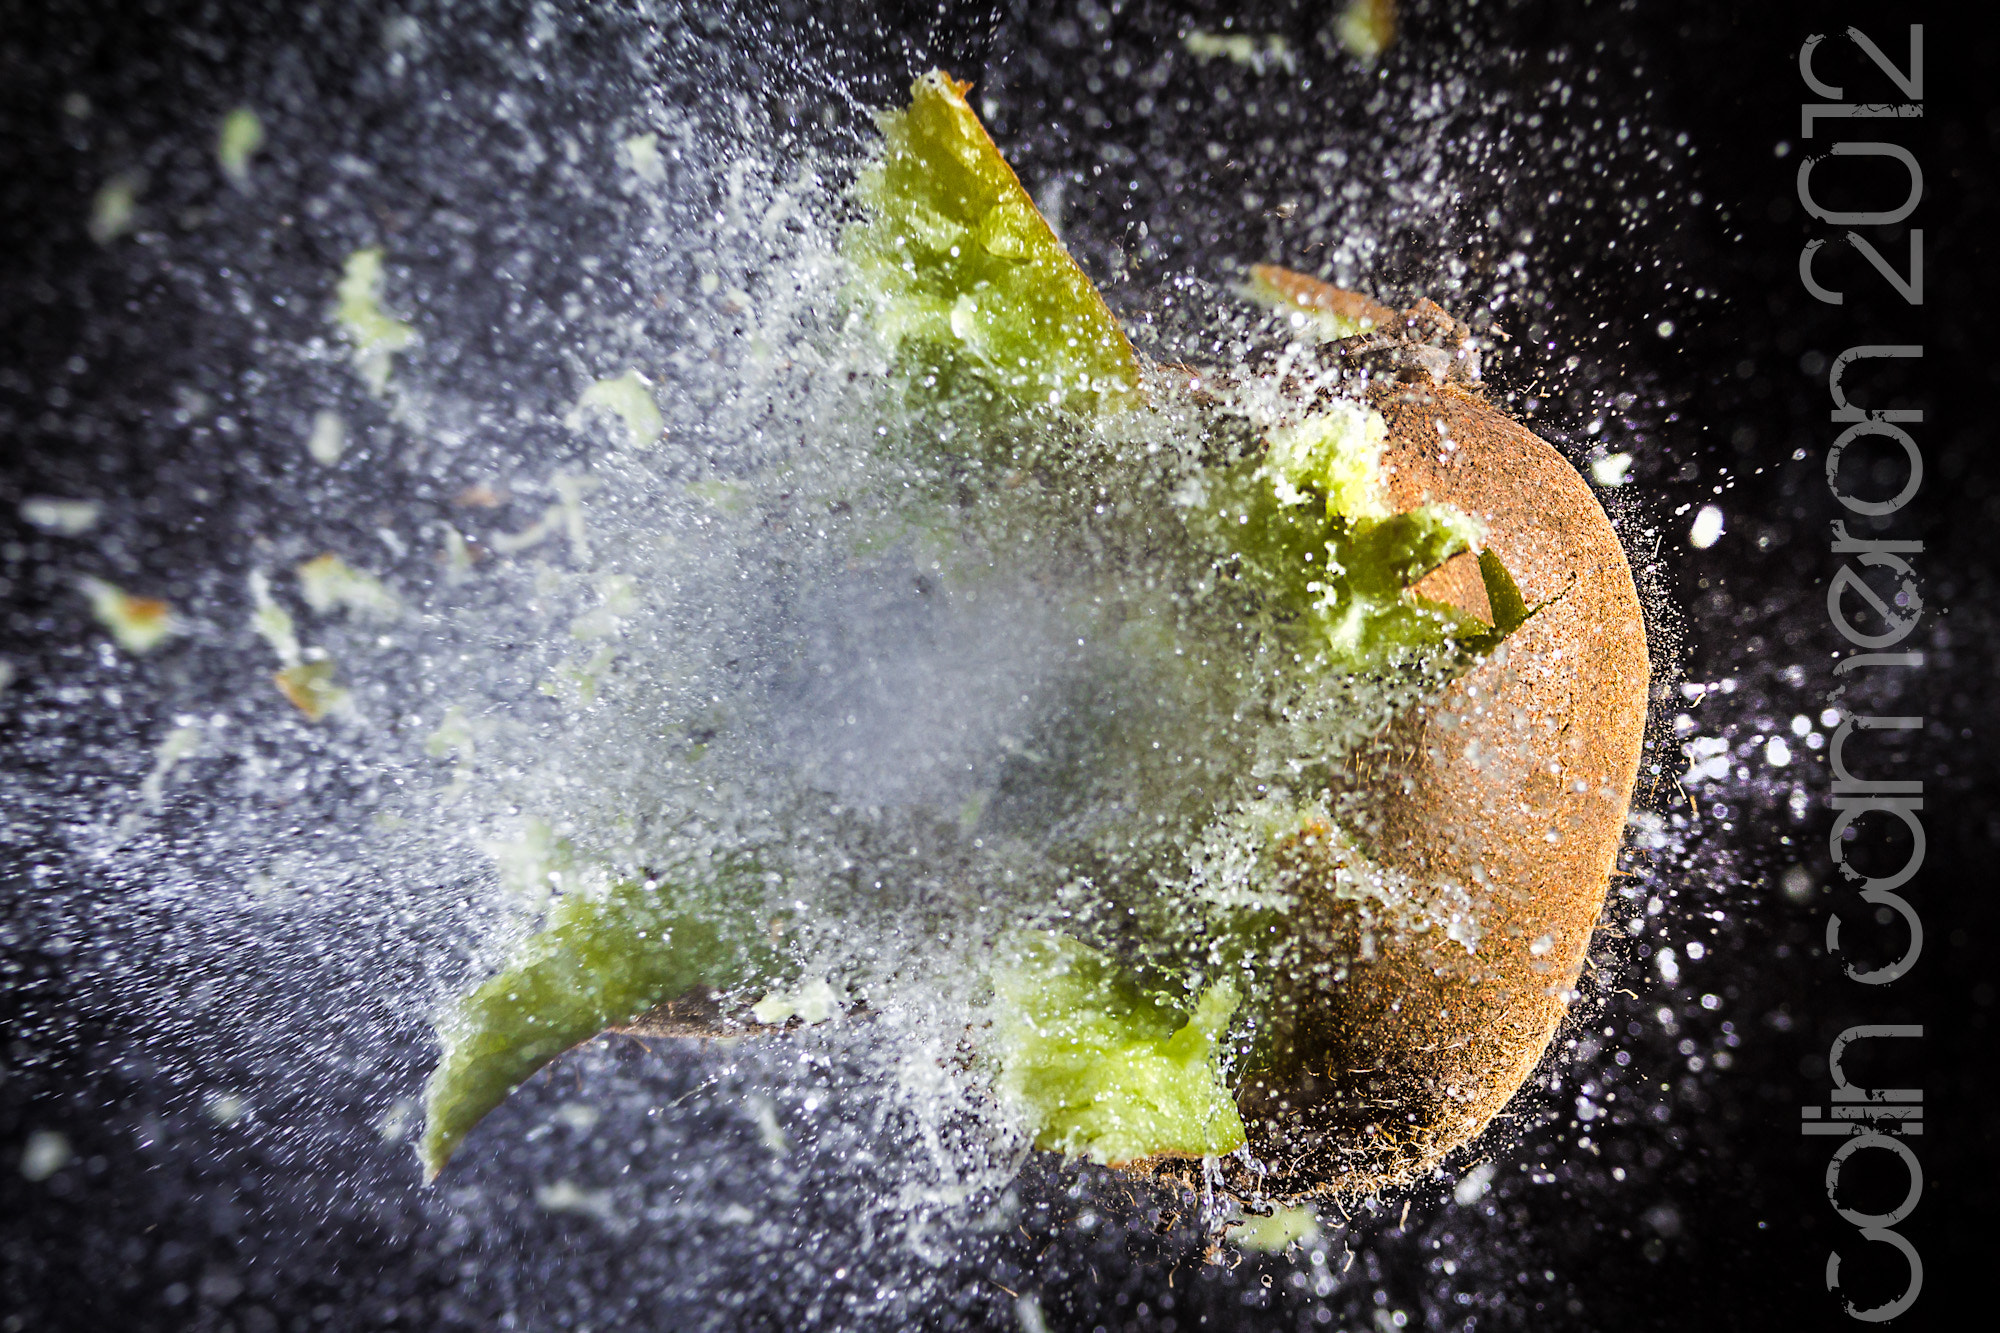 Photograph exploding kiwi by Colin Cameron on 500px